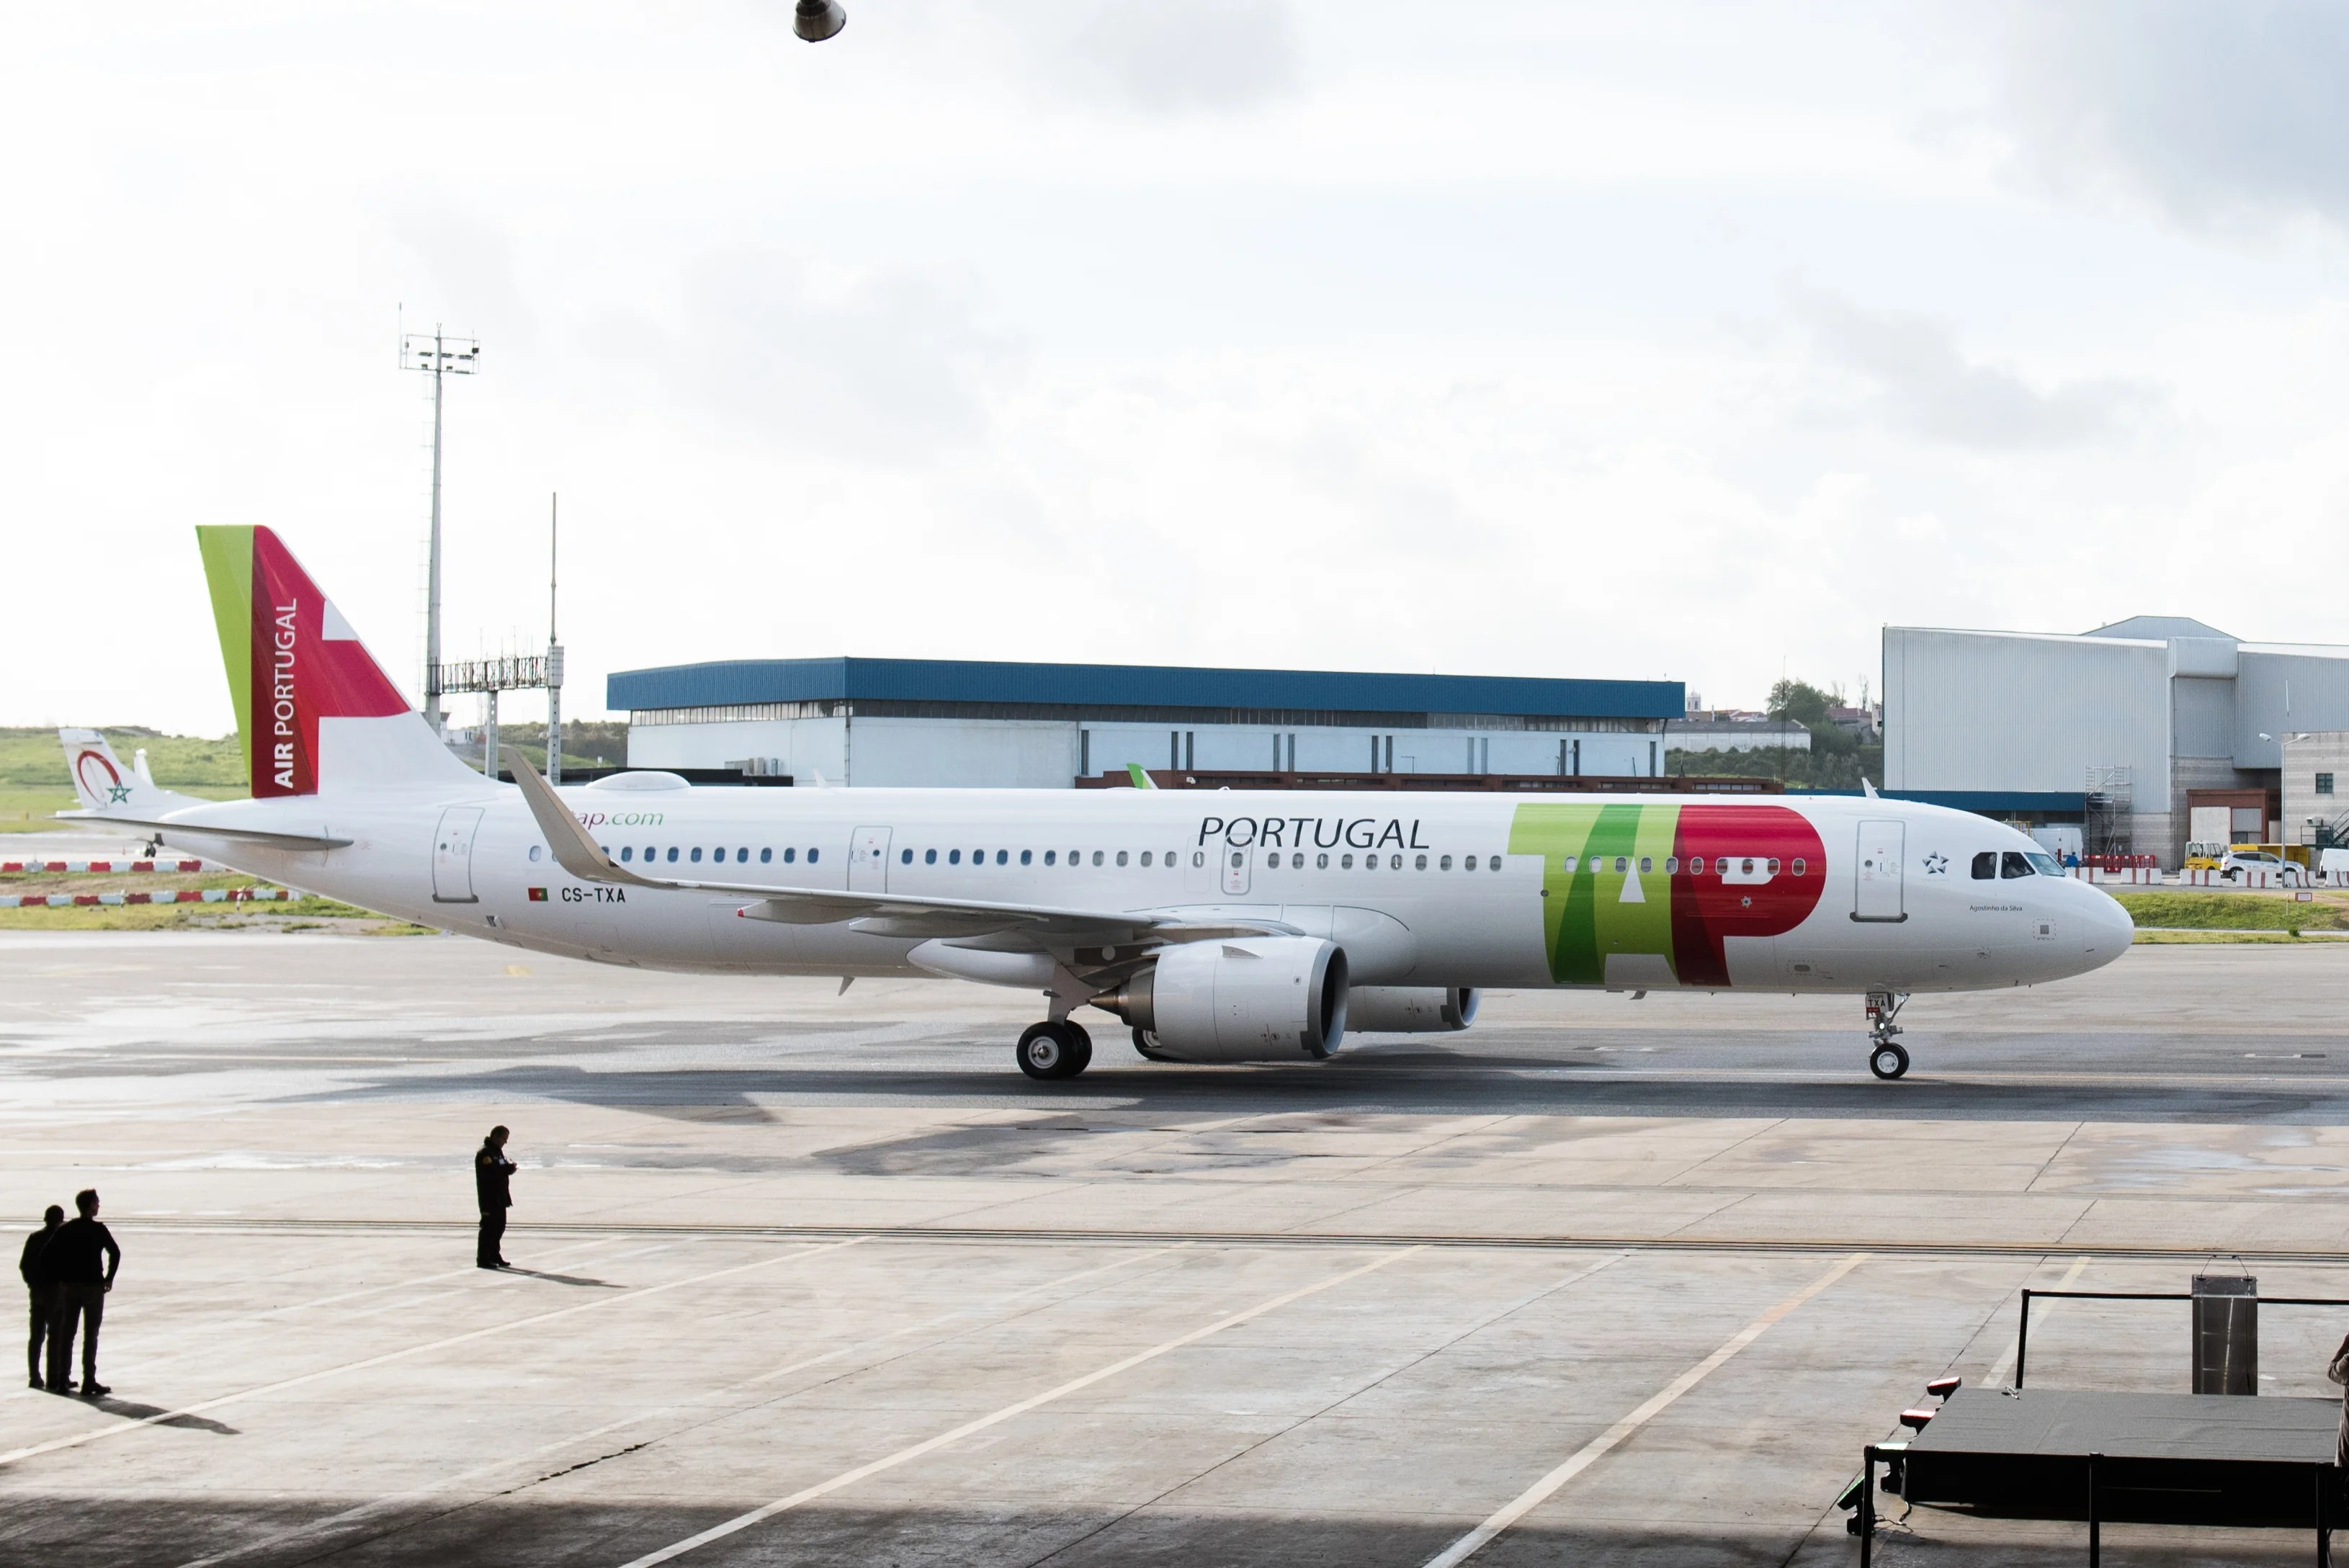 TAP Air Portugal expands again, adding new routes from Boston and Montreal